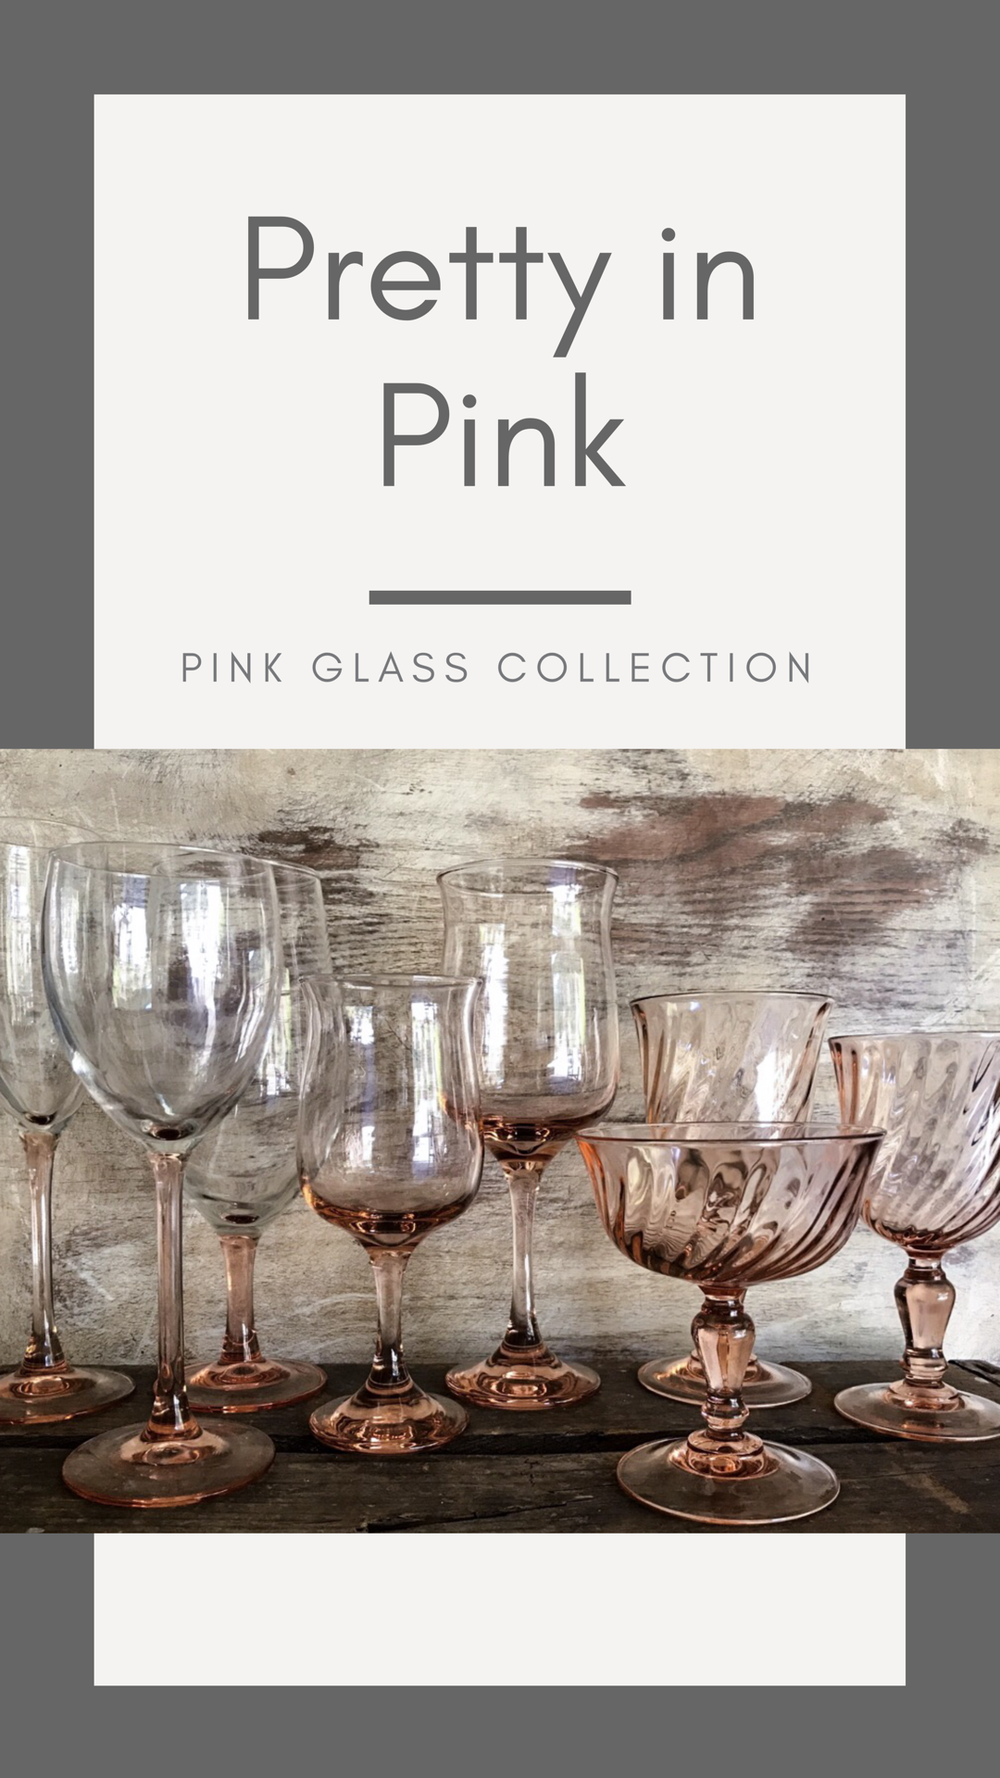 A collection of vintage pink goblets and glasses can enhance any wedding table or reception. These can be rented from Birdie in a Barn in the Temecula Valley.